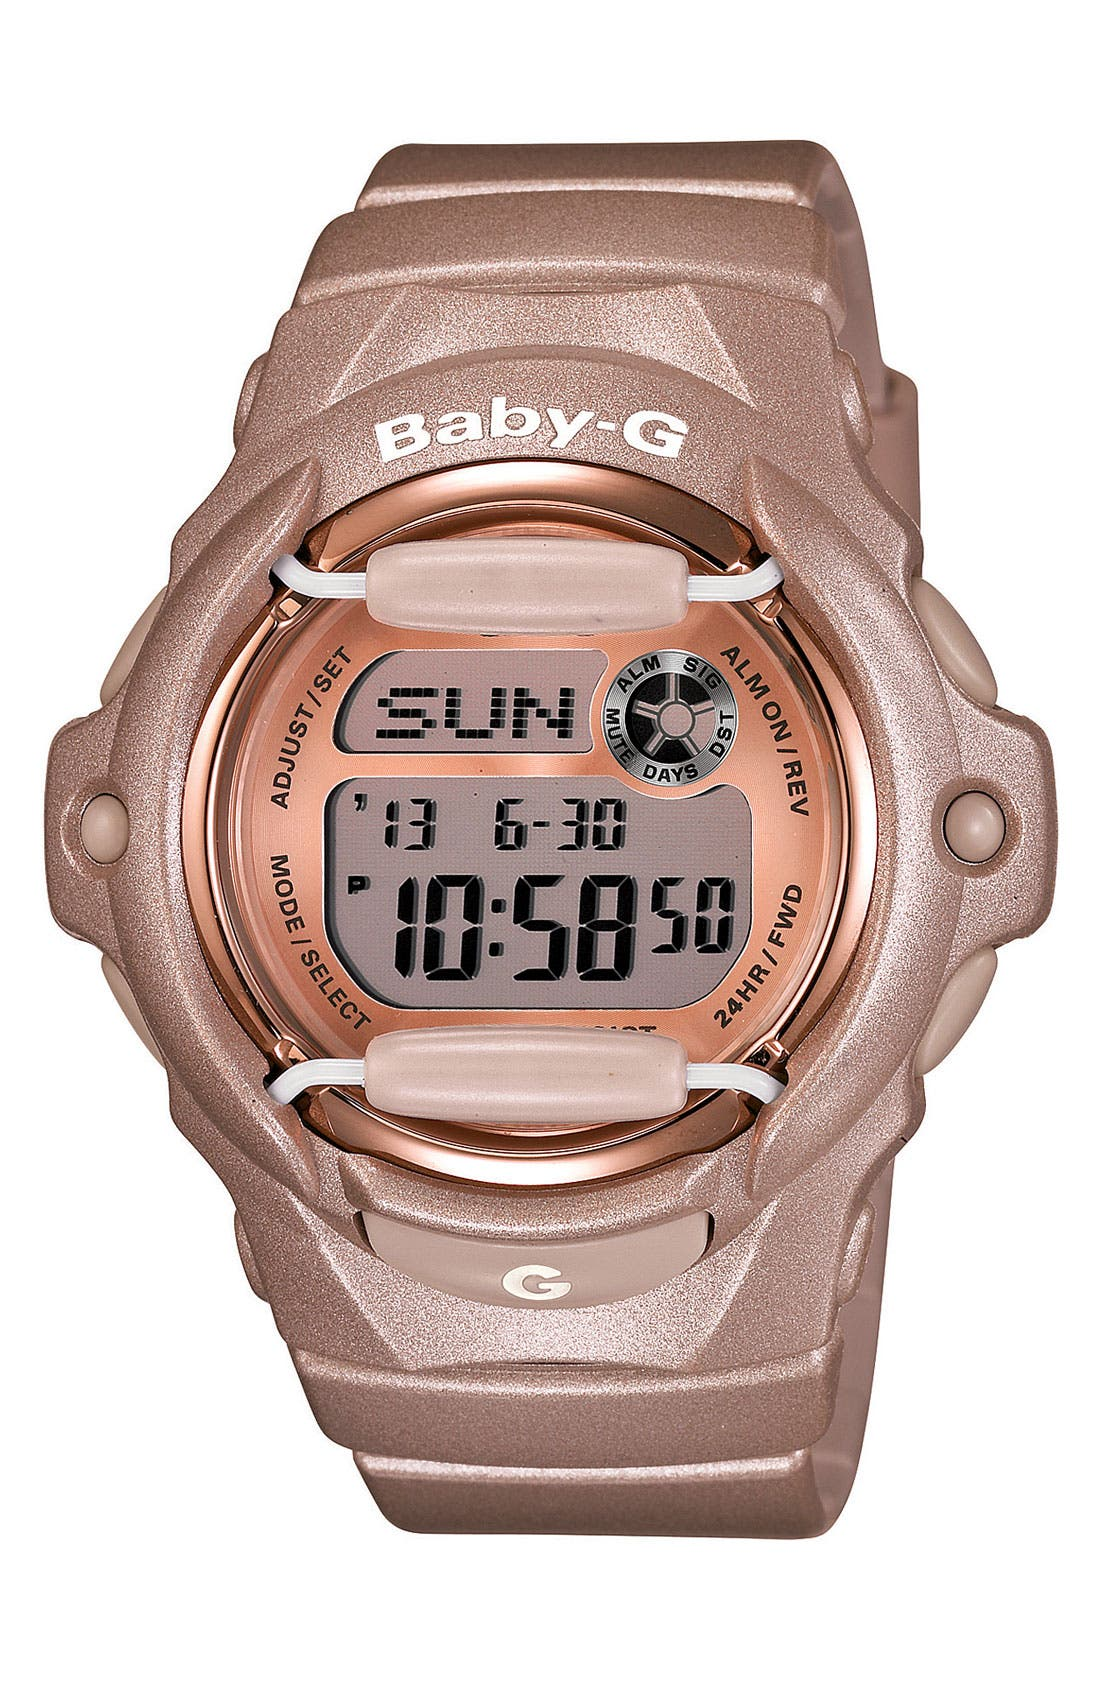 Baby-G Pink Dial Digital Watch, 46mm x 42mm,                             Main thumbnail 1, color,                             CHAMPAGNE PINK